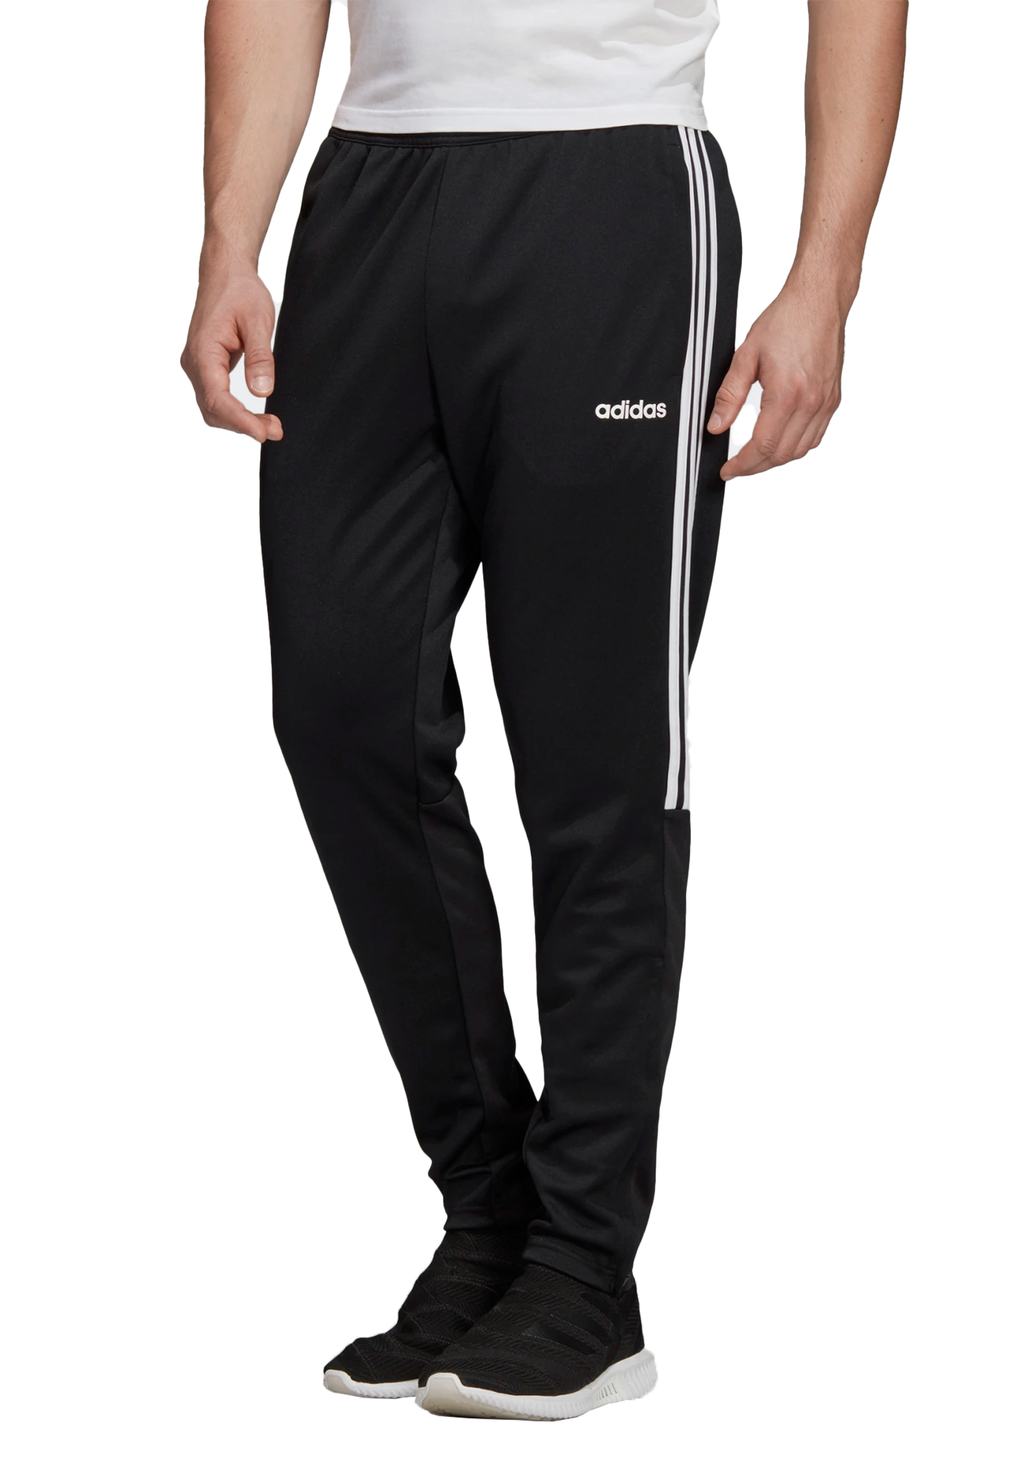 ADIDAS MENS SERENO 19 TRAINING PANTS <br> DY3133